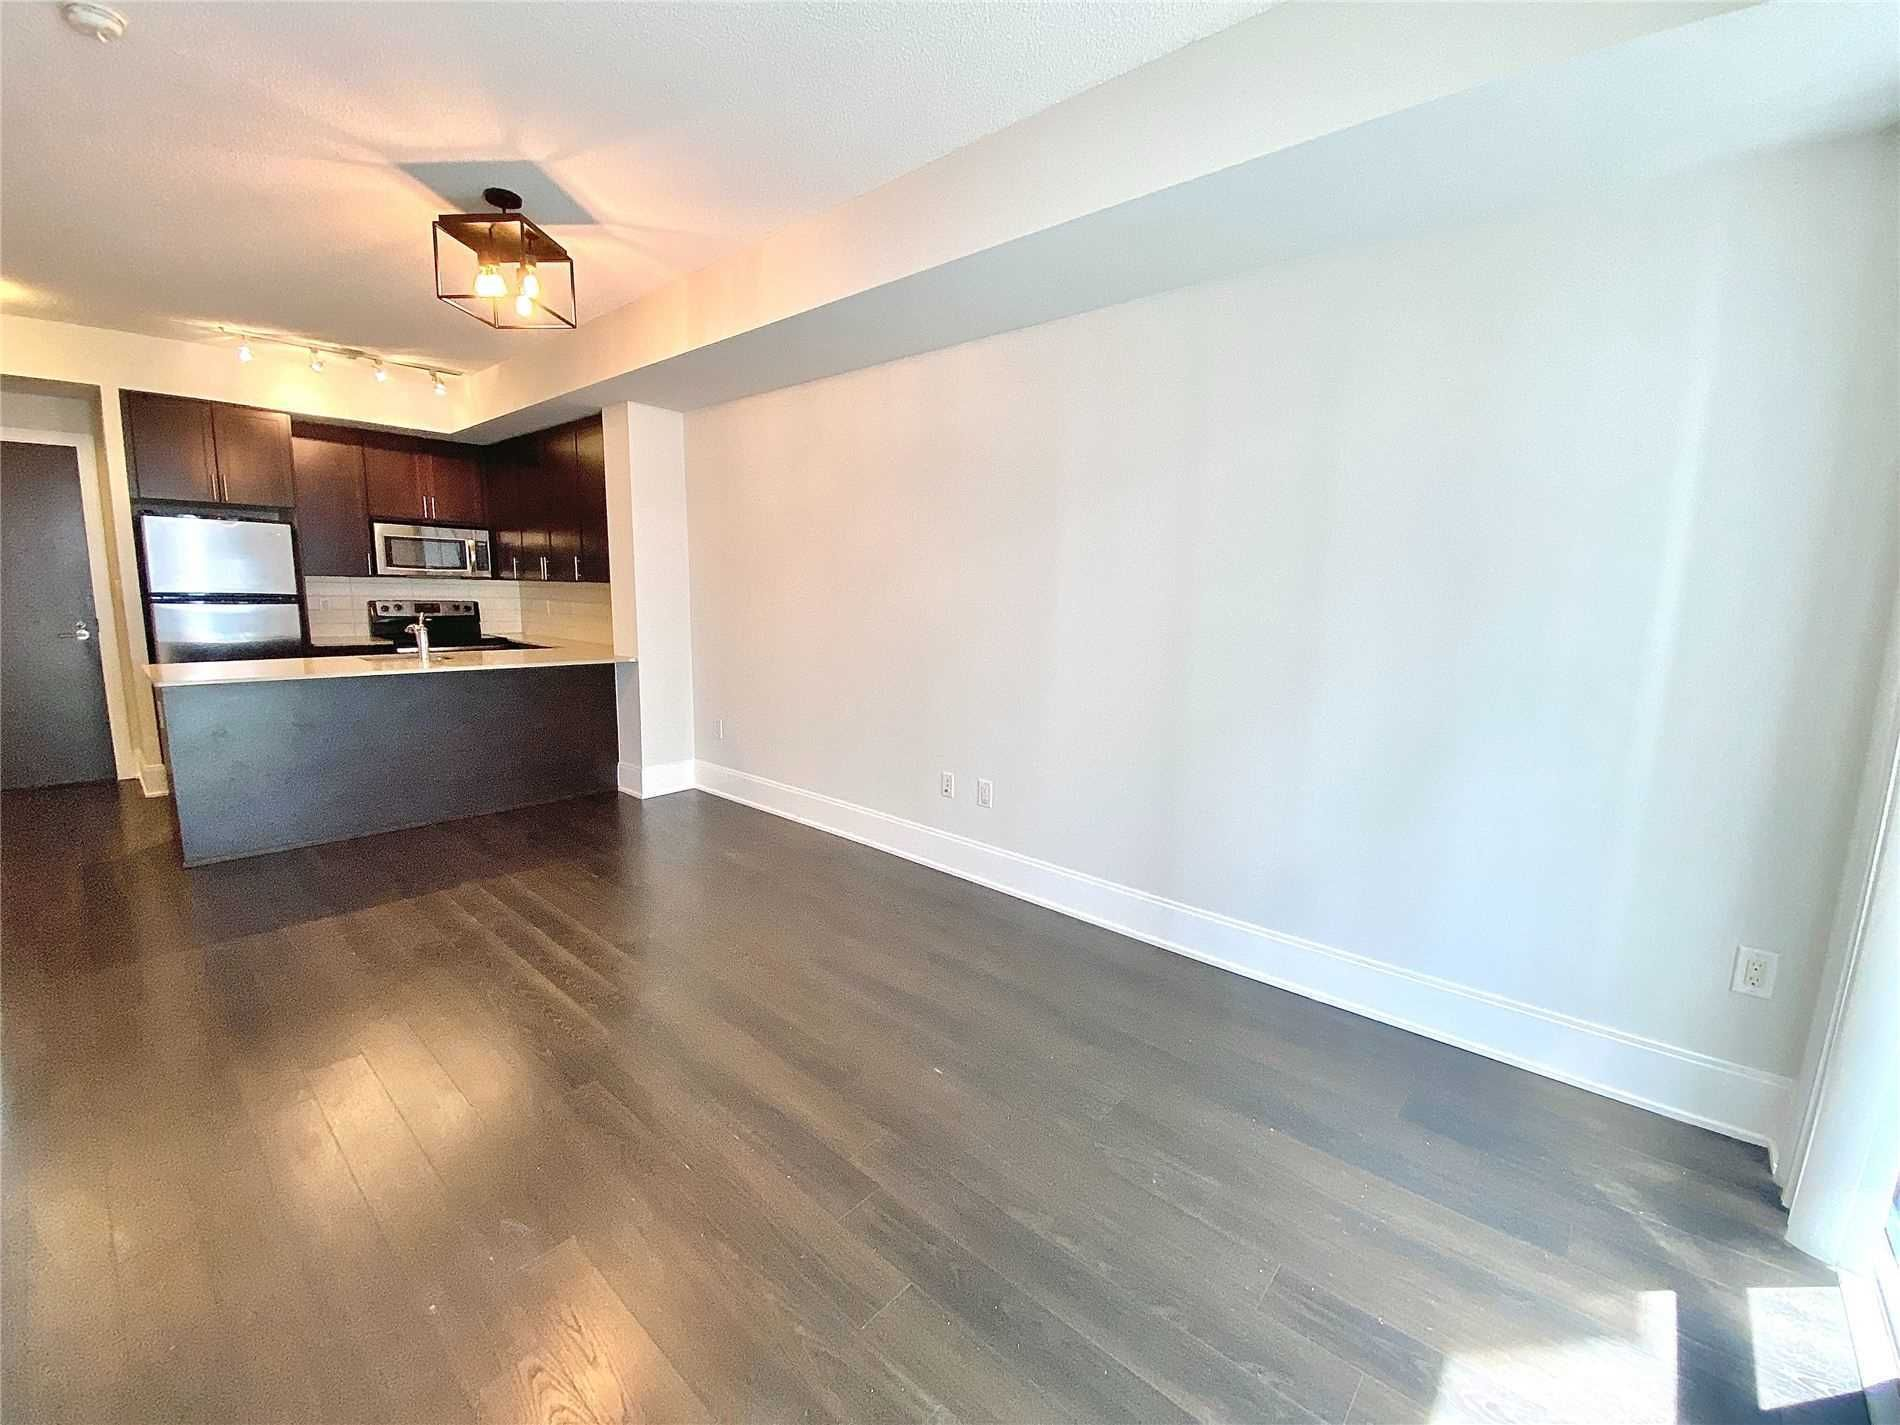 560 Front St W, unit 406 for sale in Toronto - image #2